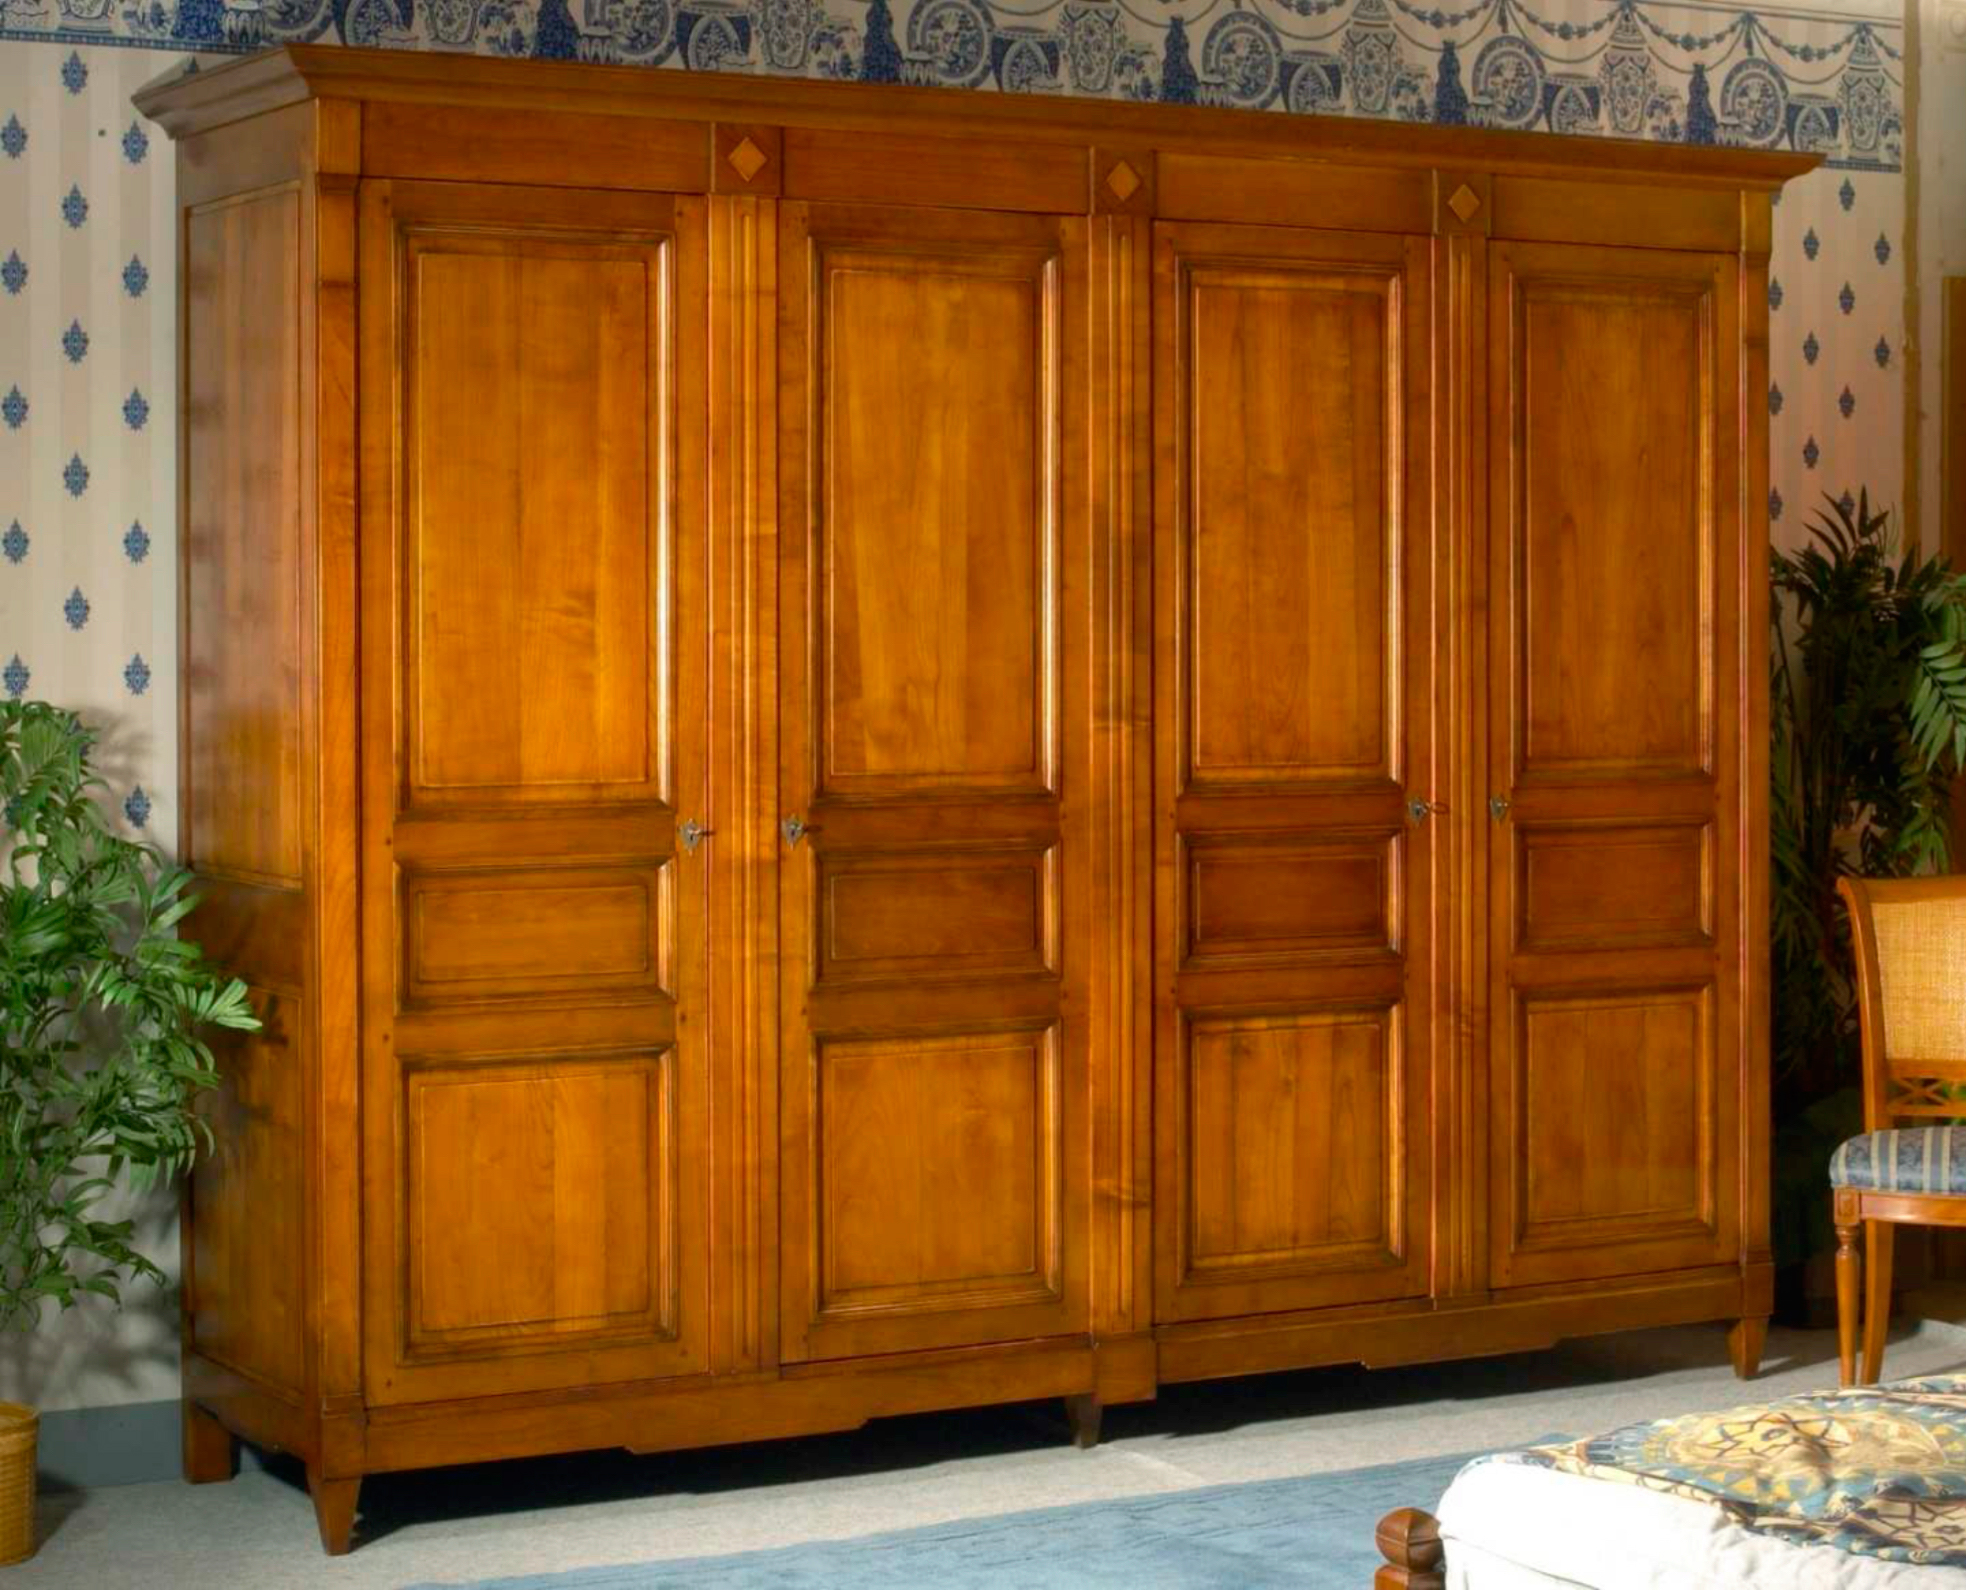 meubles richelieu armoire 4 portes de style directoire. Black Bedroom Furniture Sets. Home Design Ideas